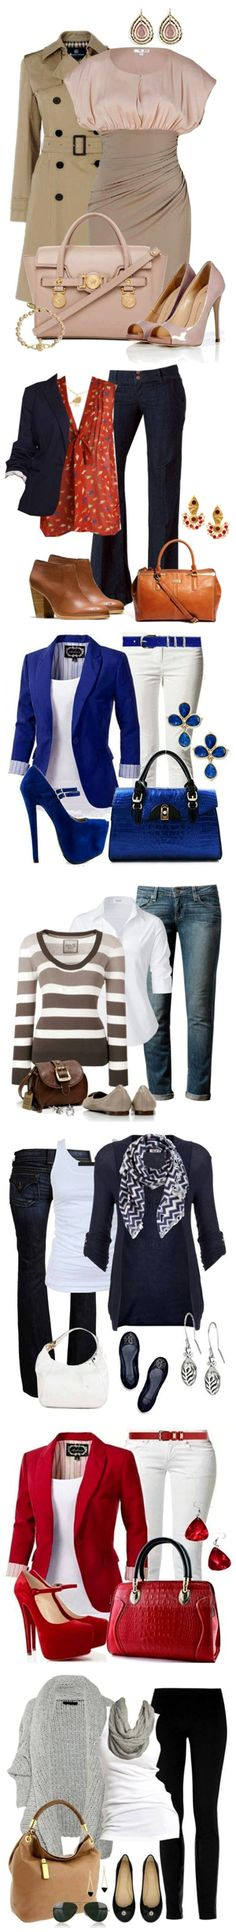 Gorgeous Outfit Ideas Teen Fashion, Fashion Outfits, Outfit Ideas, Classy, Polyvore, Image, Teenager Fashion, Dapper Gentleman, Chic